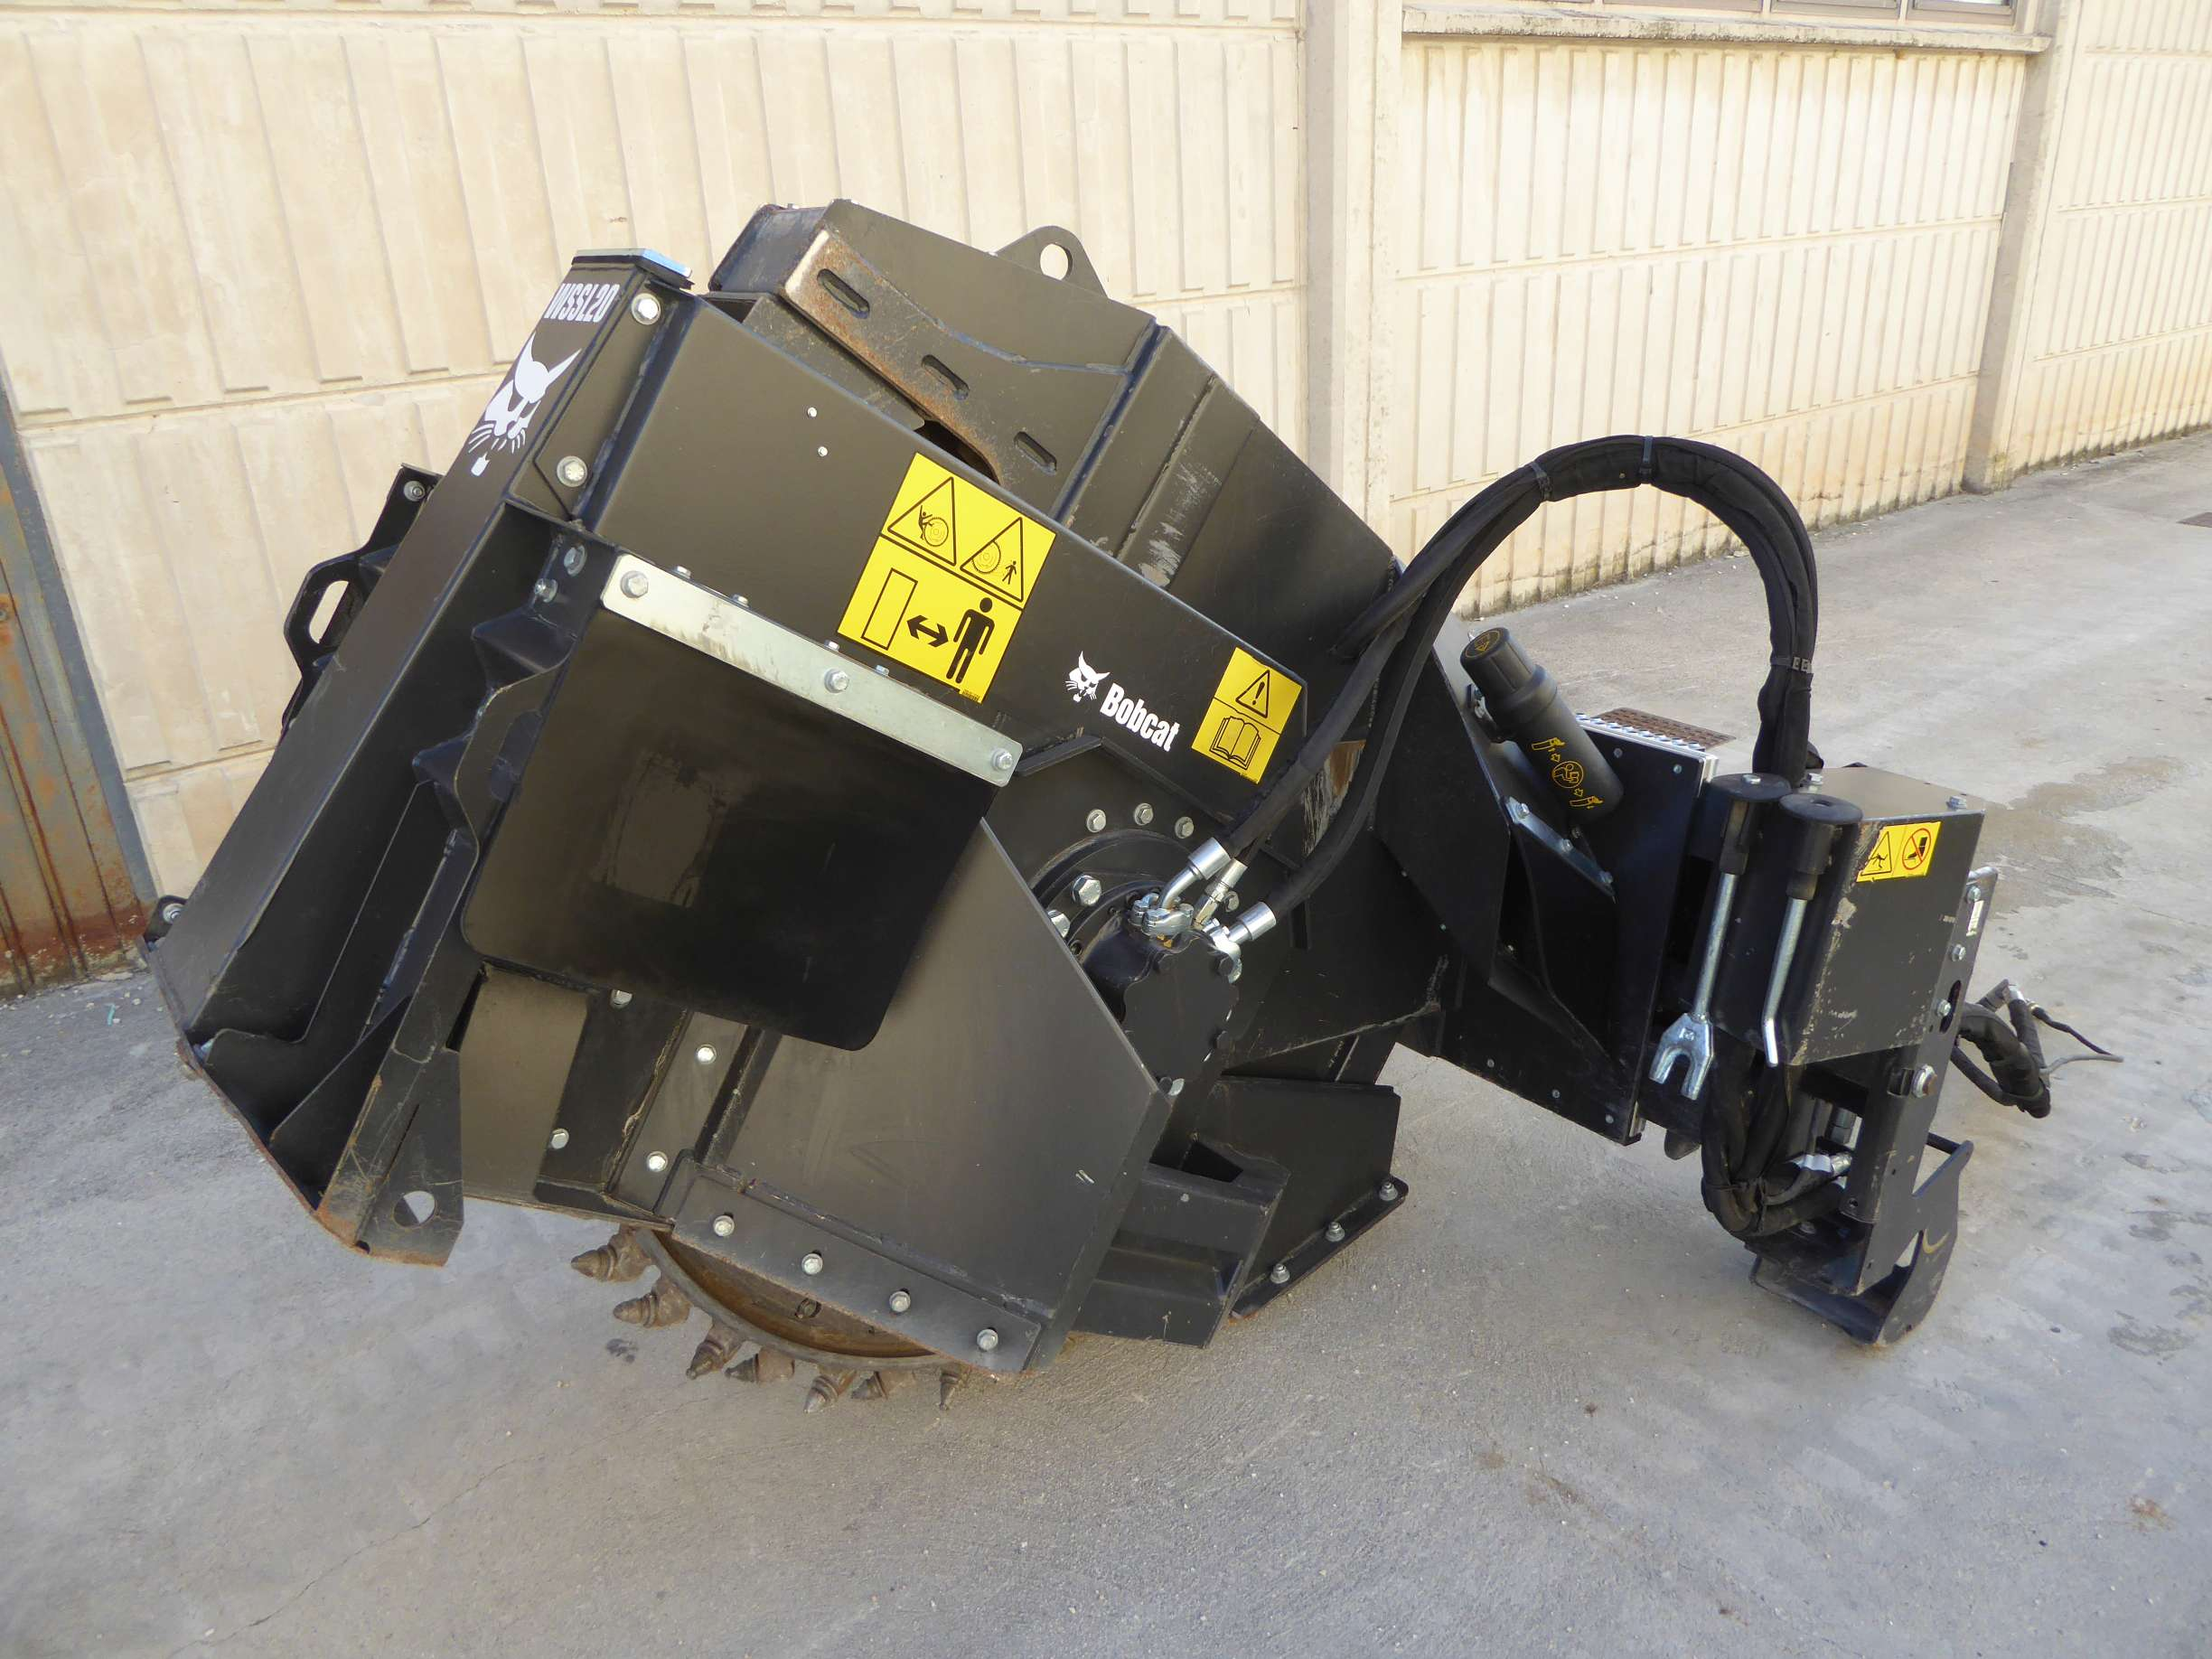 Scavacanali Bobcat WSSL 20 Wheel Saw in vendita - foto 1